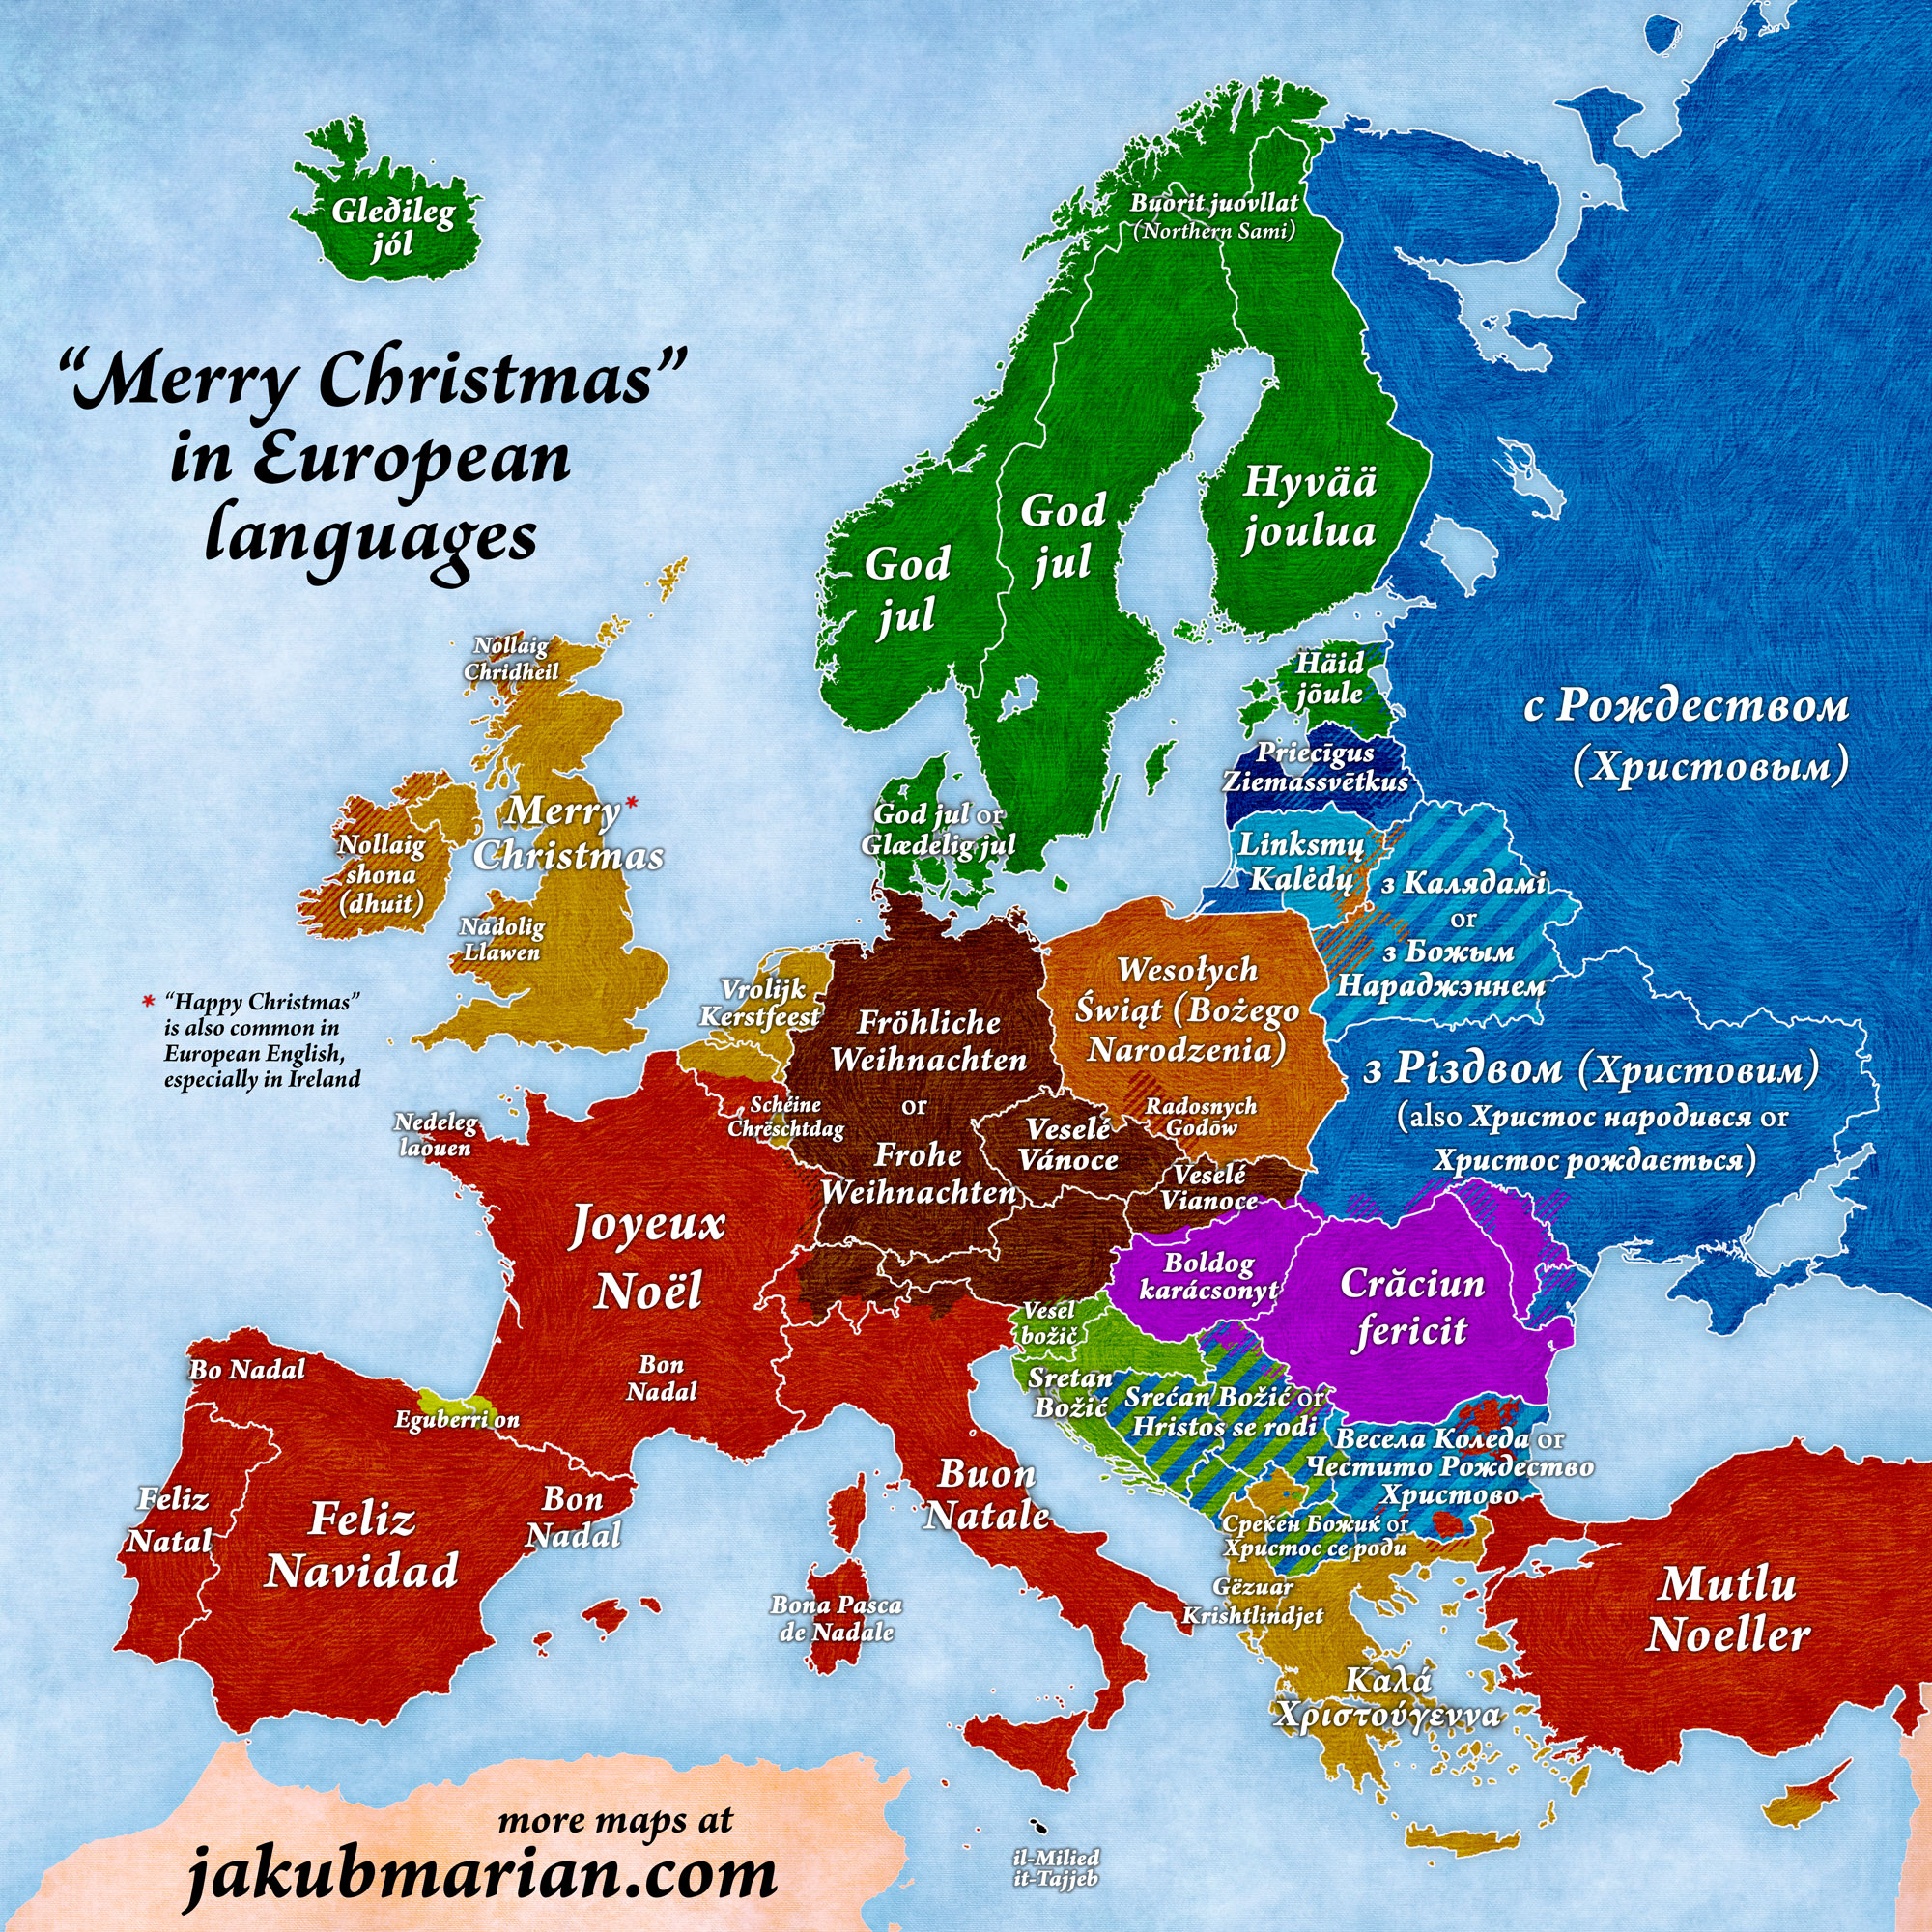 merry christmas in european languages map. Black Bedroom Furniture Sets. Home Design Ideas